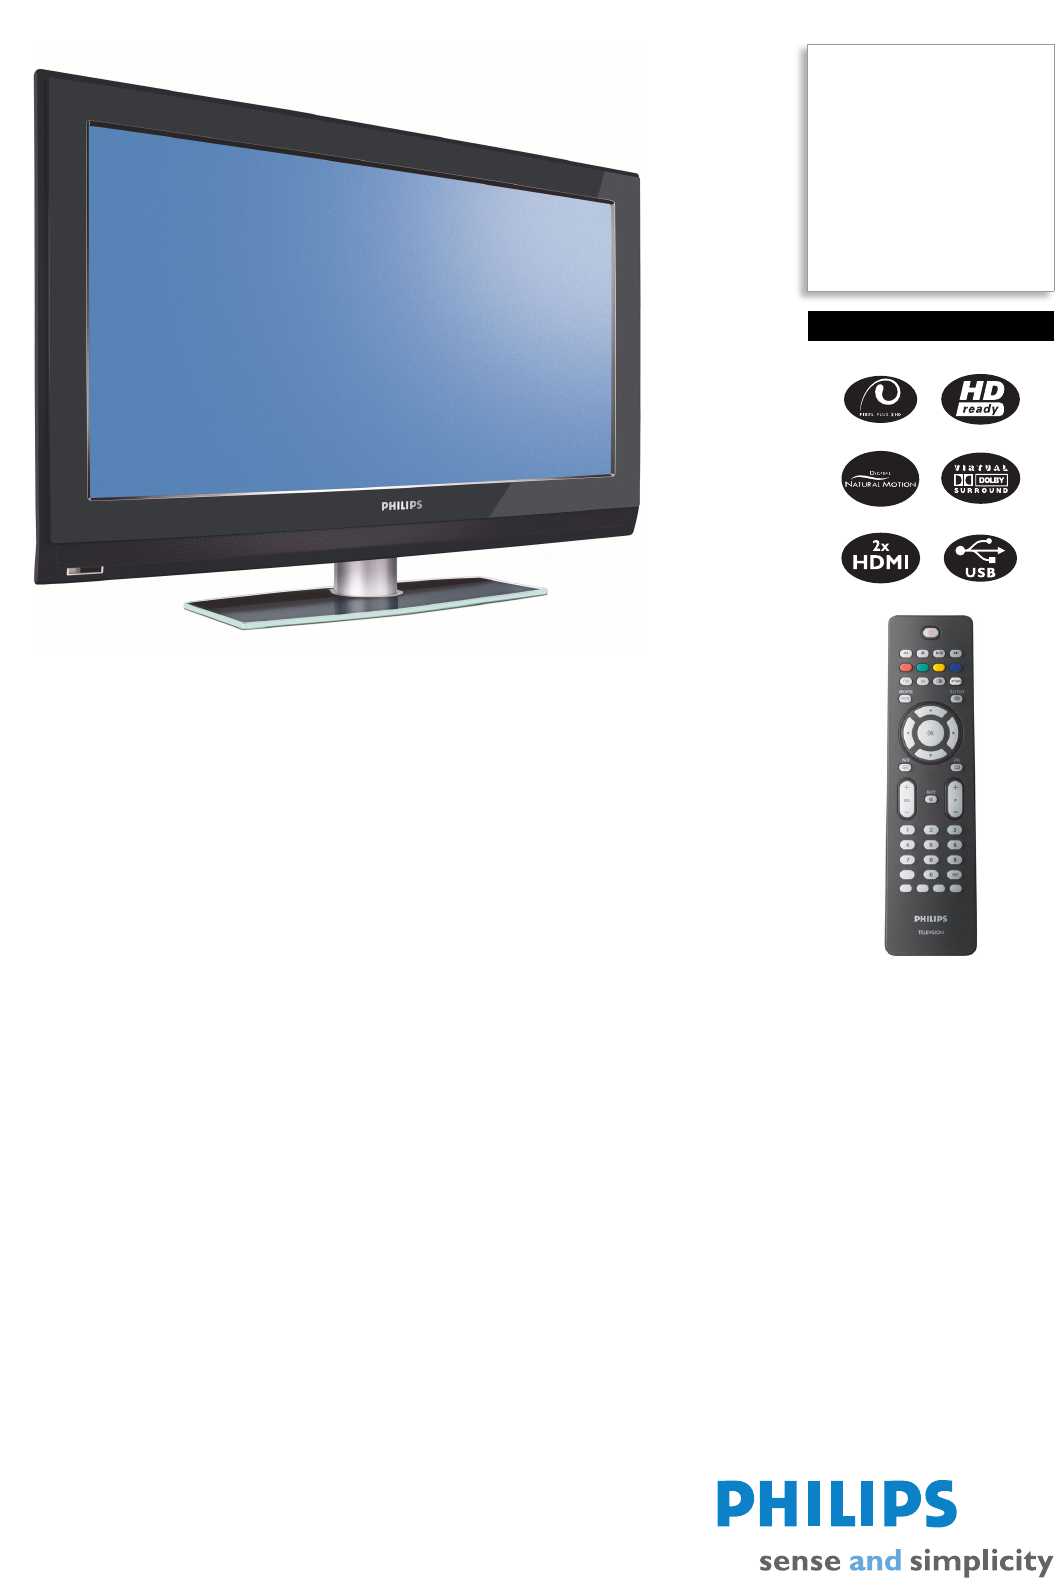 philips flat panel television 32pfl7332 10 user guide rh tv manualsonline com philips tv user manual model 60pl9200d/37 philips tv user guide